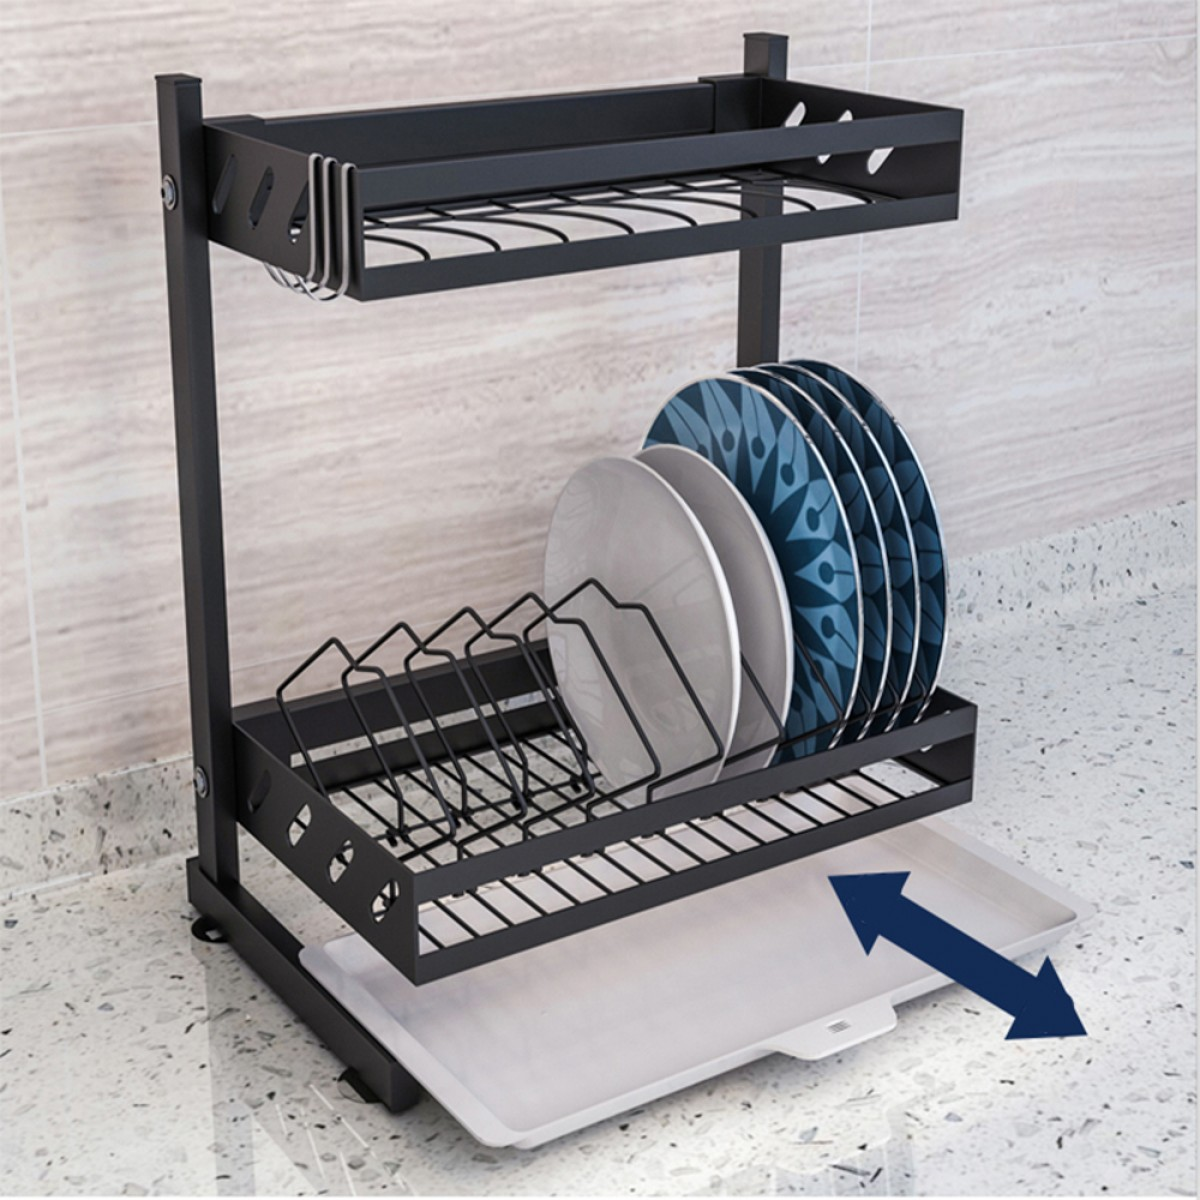 2 Tier Black Stainless Steel Bowl And Dish Drying Rack